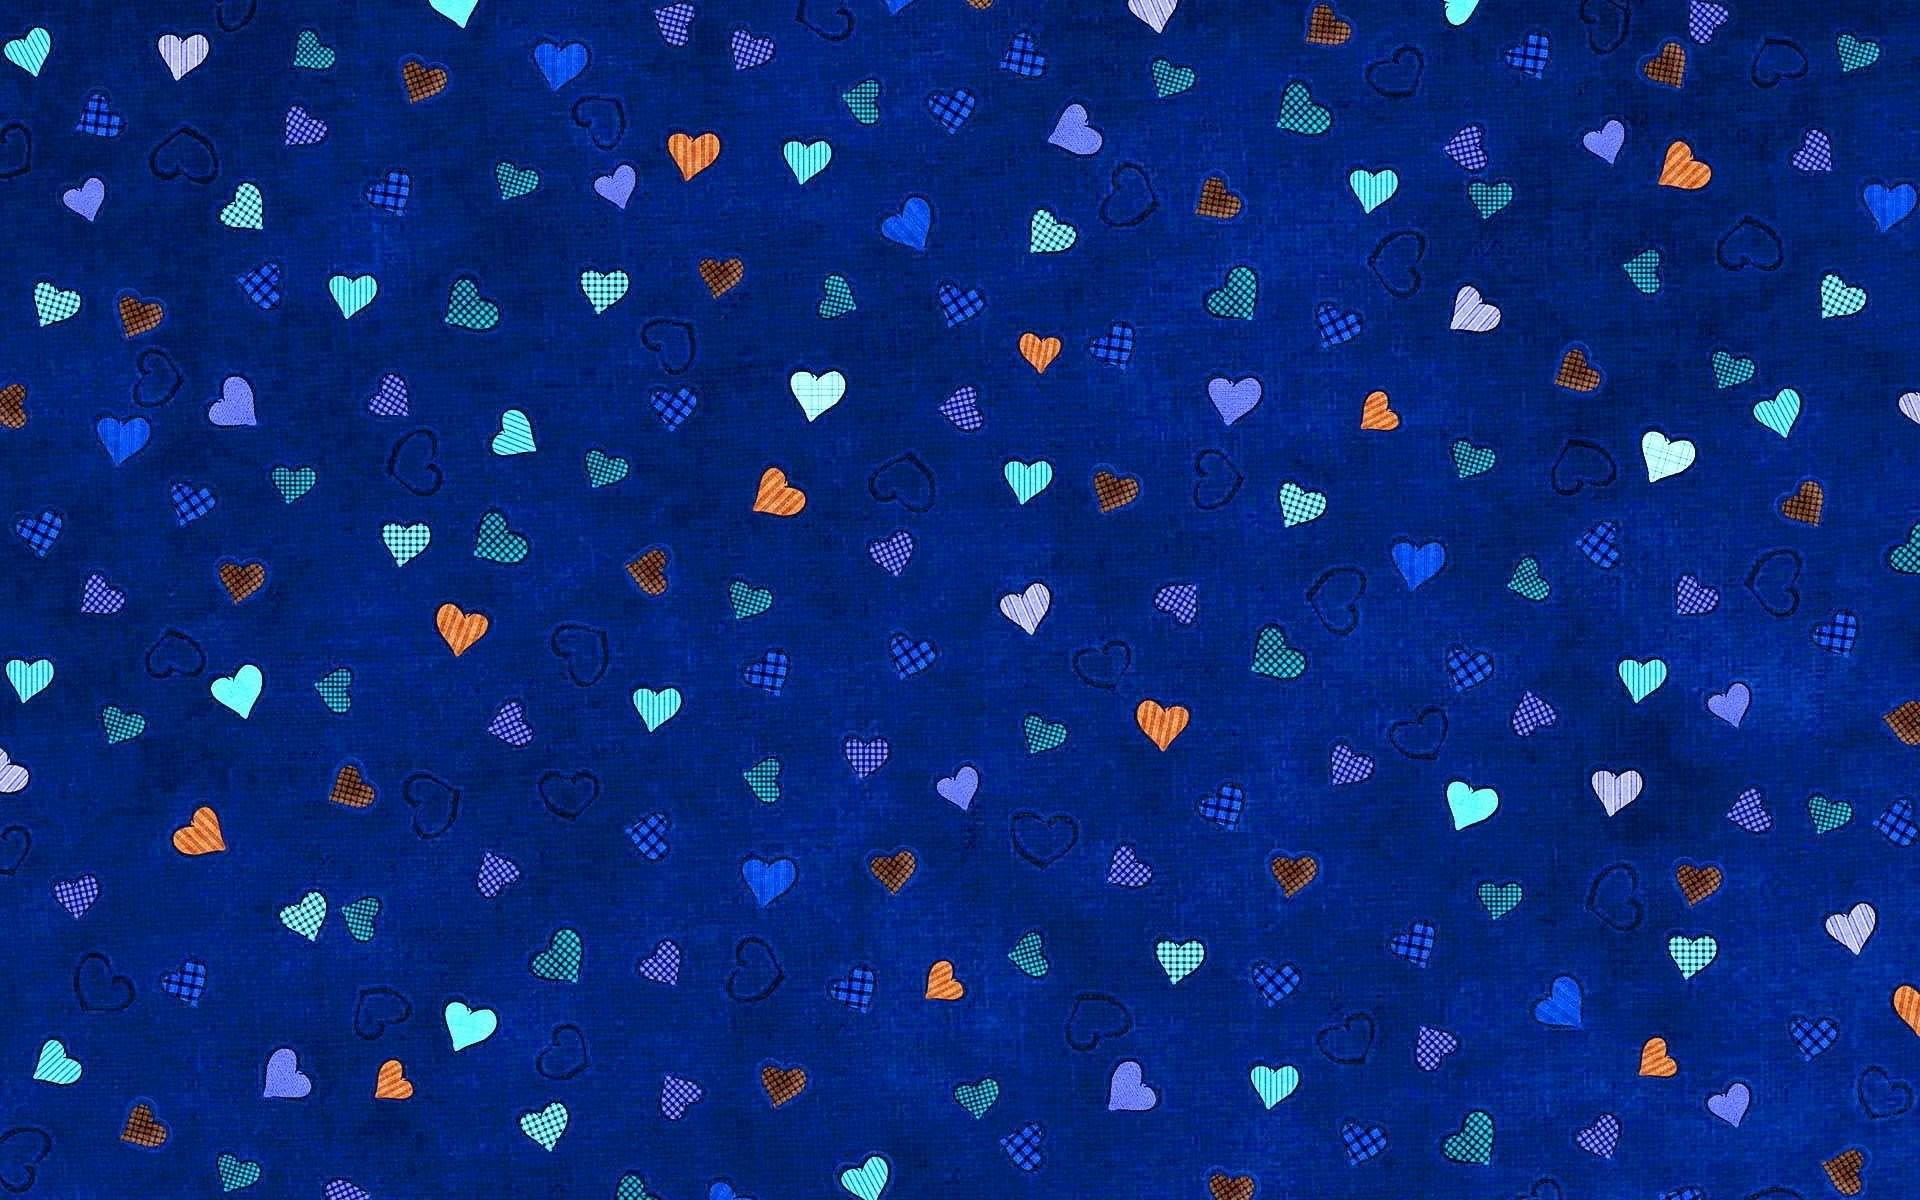 blue hearts background wallpaper – photo #6. Wallpaper Borders eBay